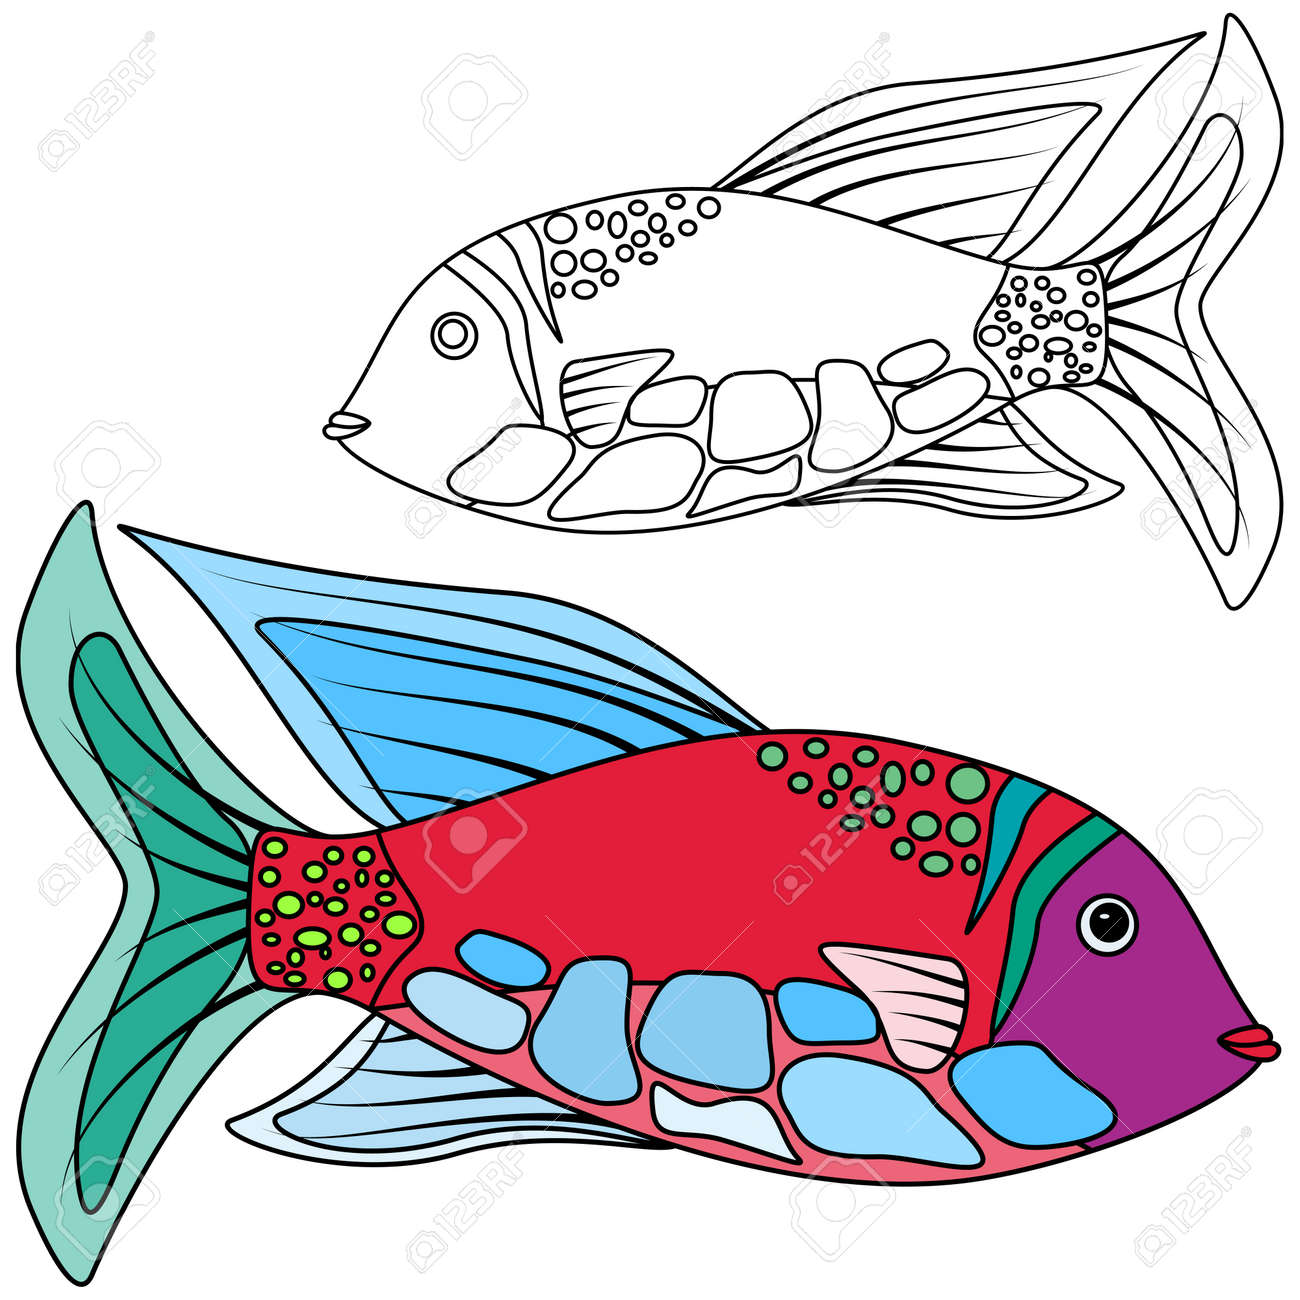 Fish Abstrac Kids Coloring Royalty Free Cliparts, Vectors, And Stock ...